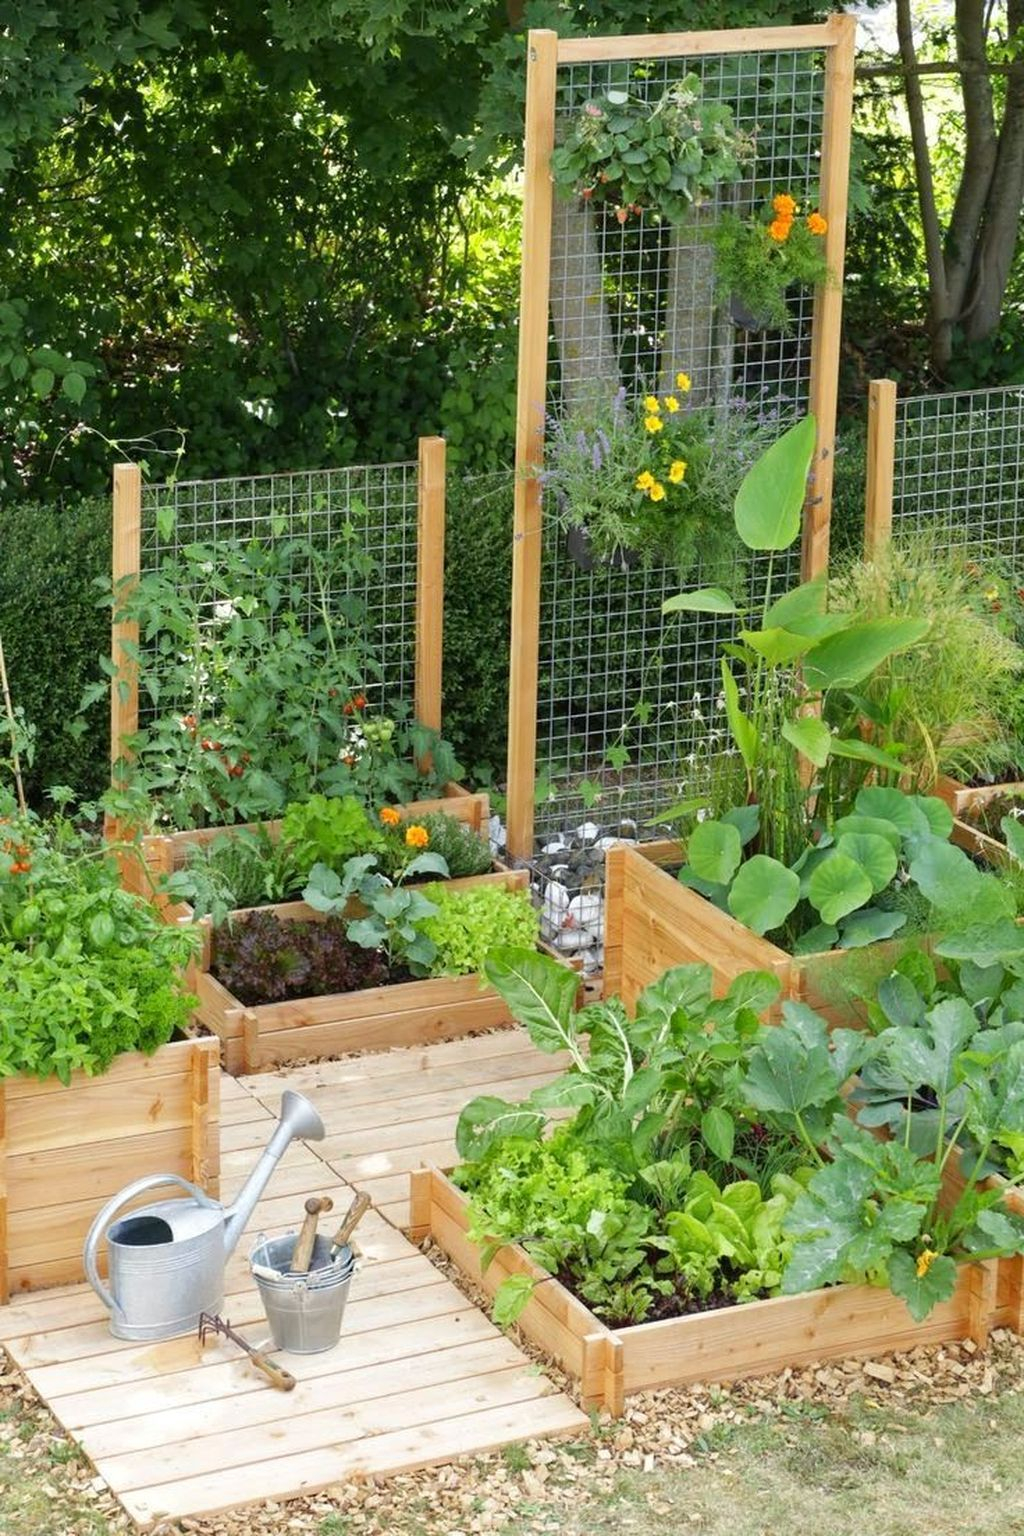 30 Cozy Small Vegetable Garden Ideas On A Budget intended for Backyard Vegetable Garden Ideas